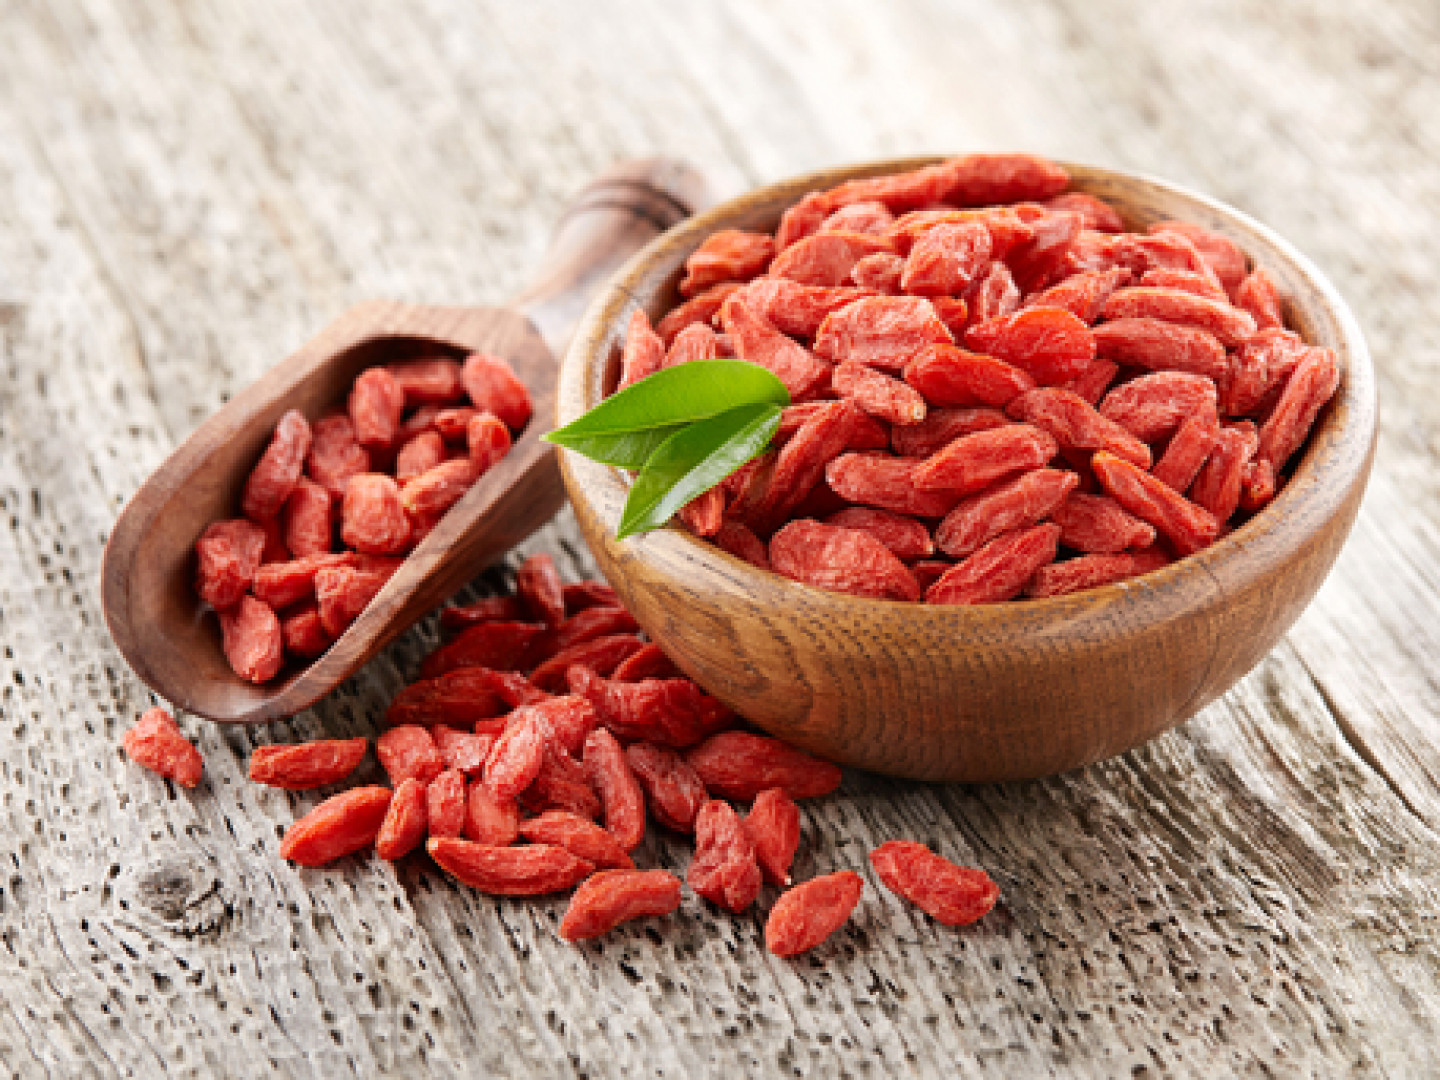 What Are Goji Berries, and Where Can You Find Them?